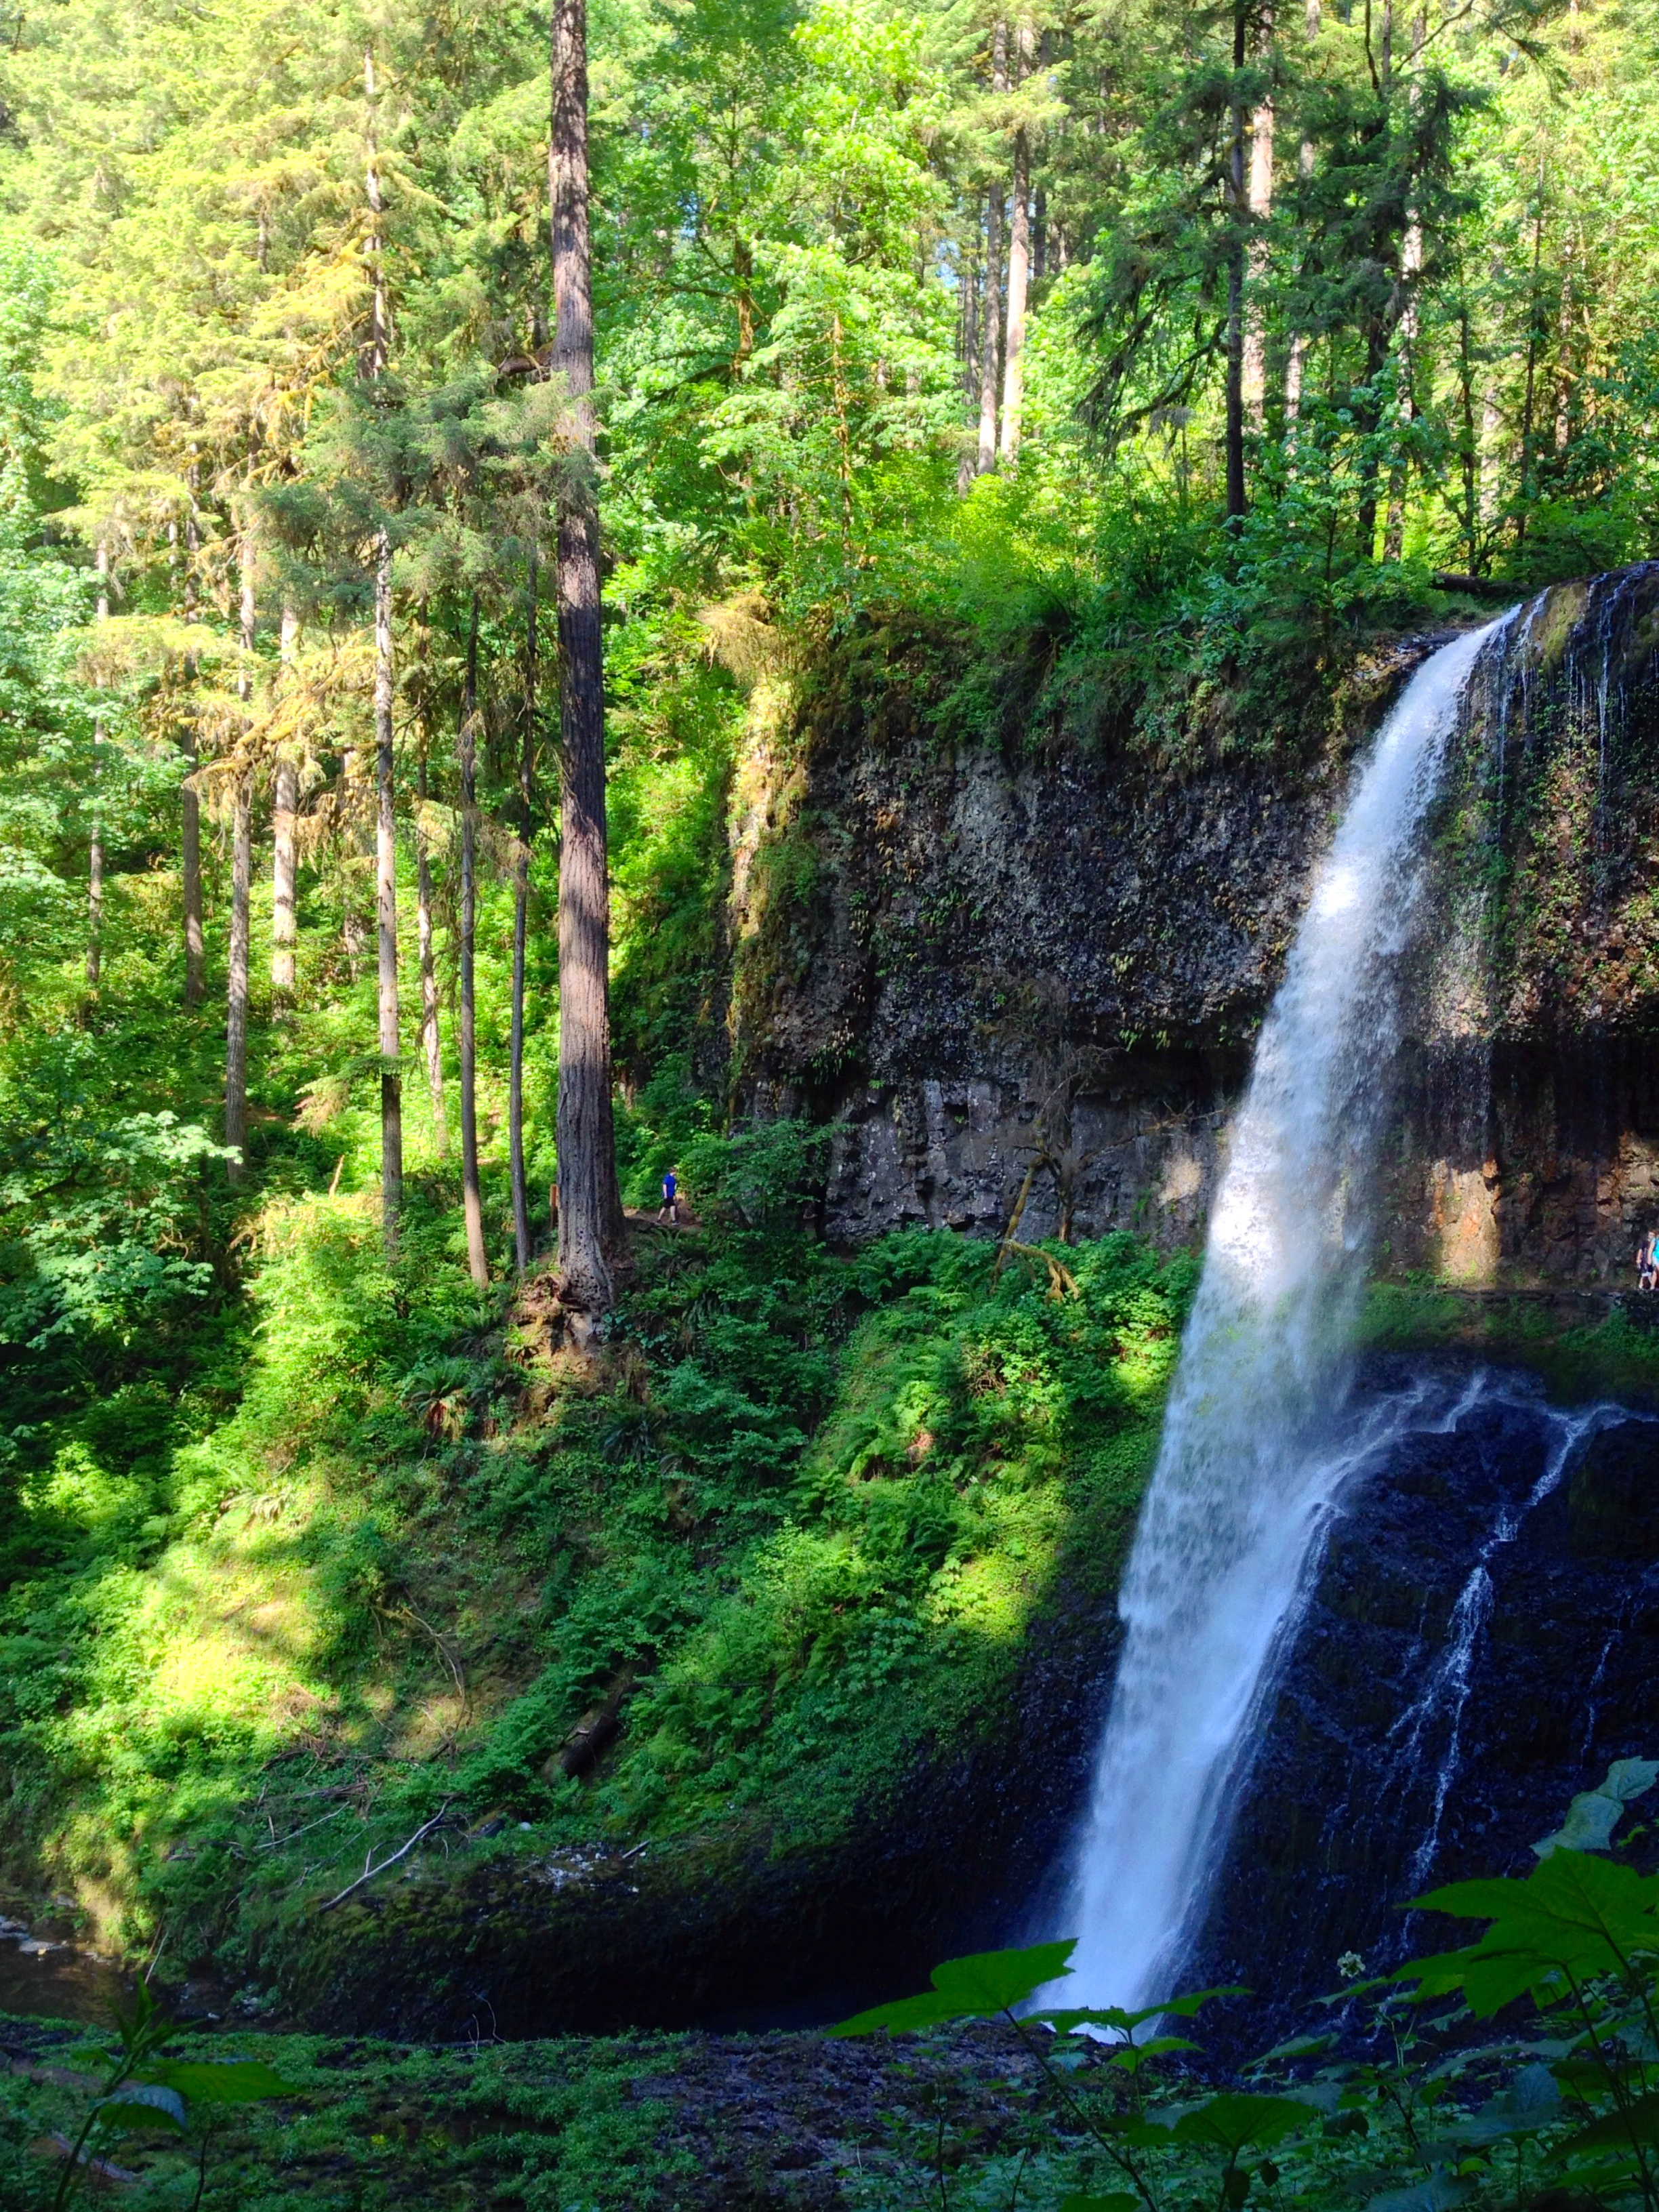 Middle North Falls, OR (106 ft)